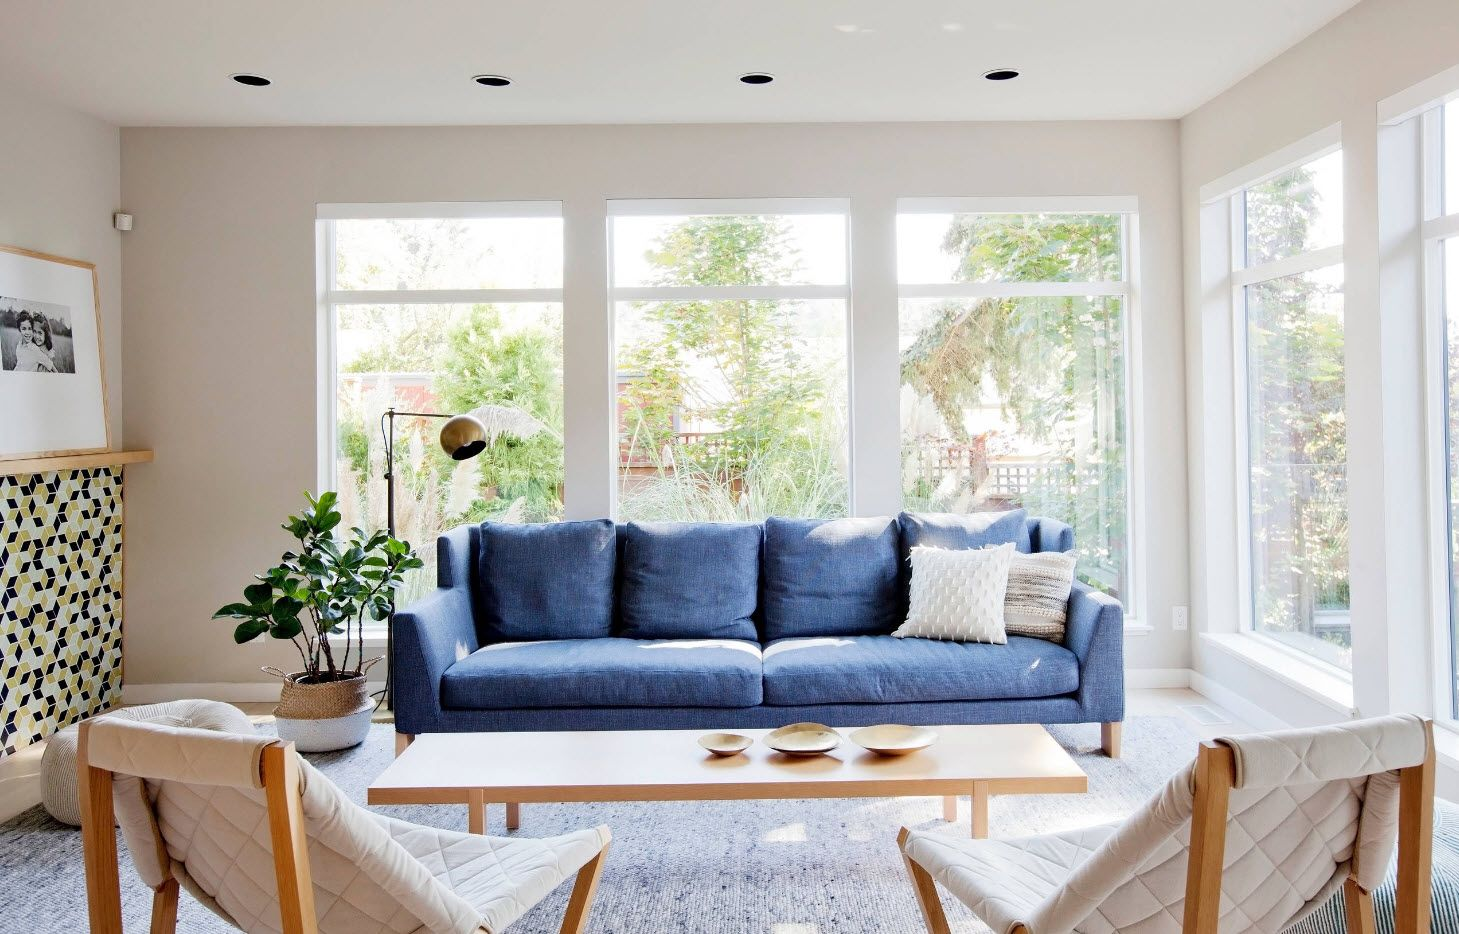 Bright blue sofa accent in the light room